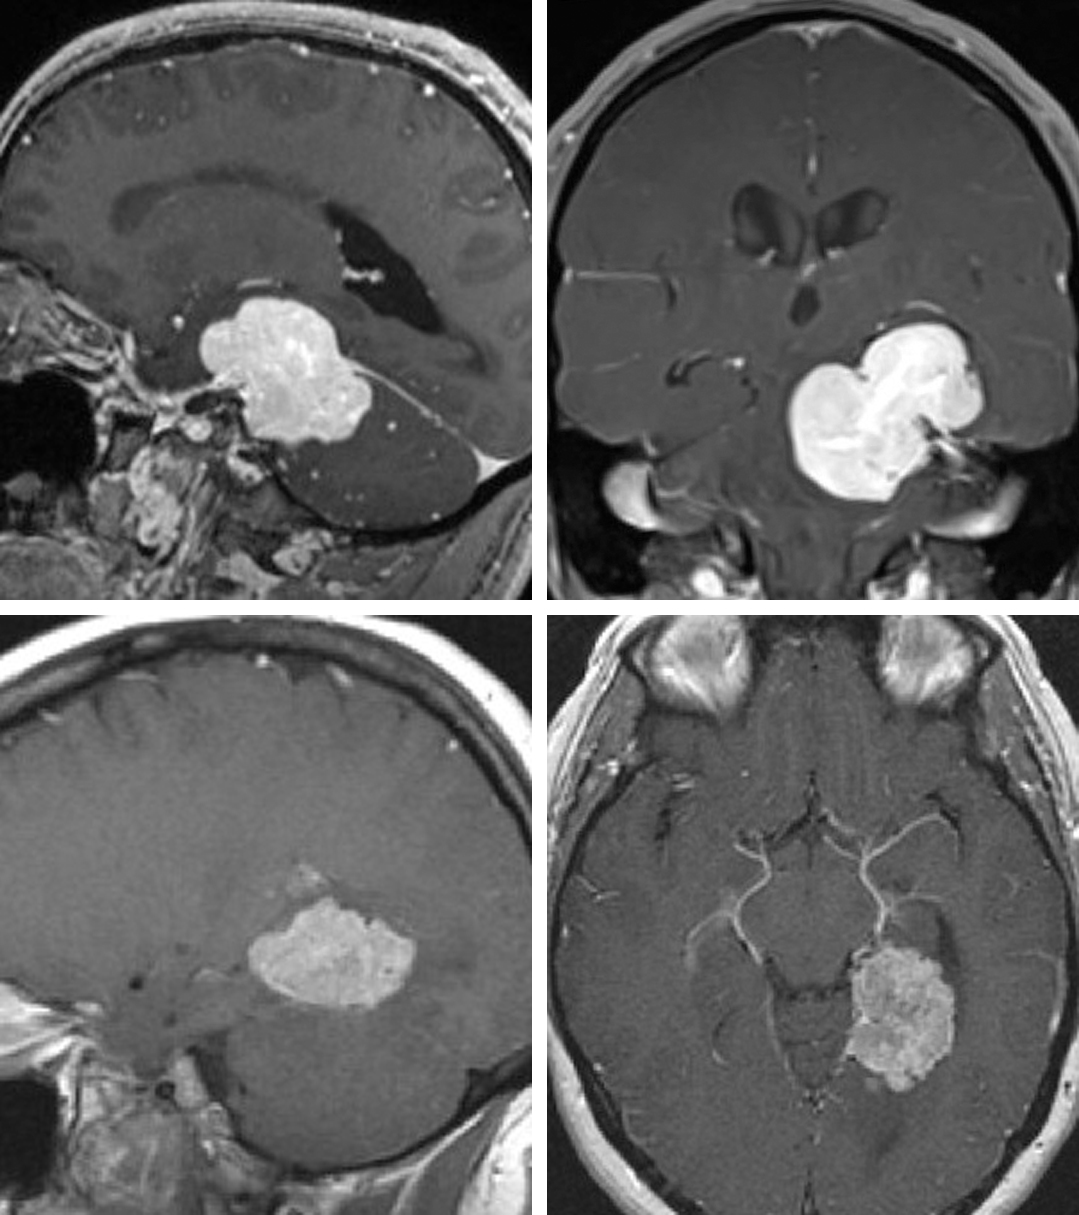 Figure 3: Transtentorial petrous apex meningiomas (upper images) and medial tentorial meningiomas (lower images) may be resected through a single-stage surgery using the paramedian supracerebellar transtentorial route.